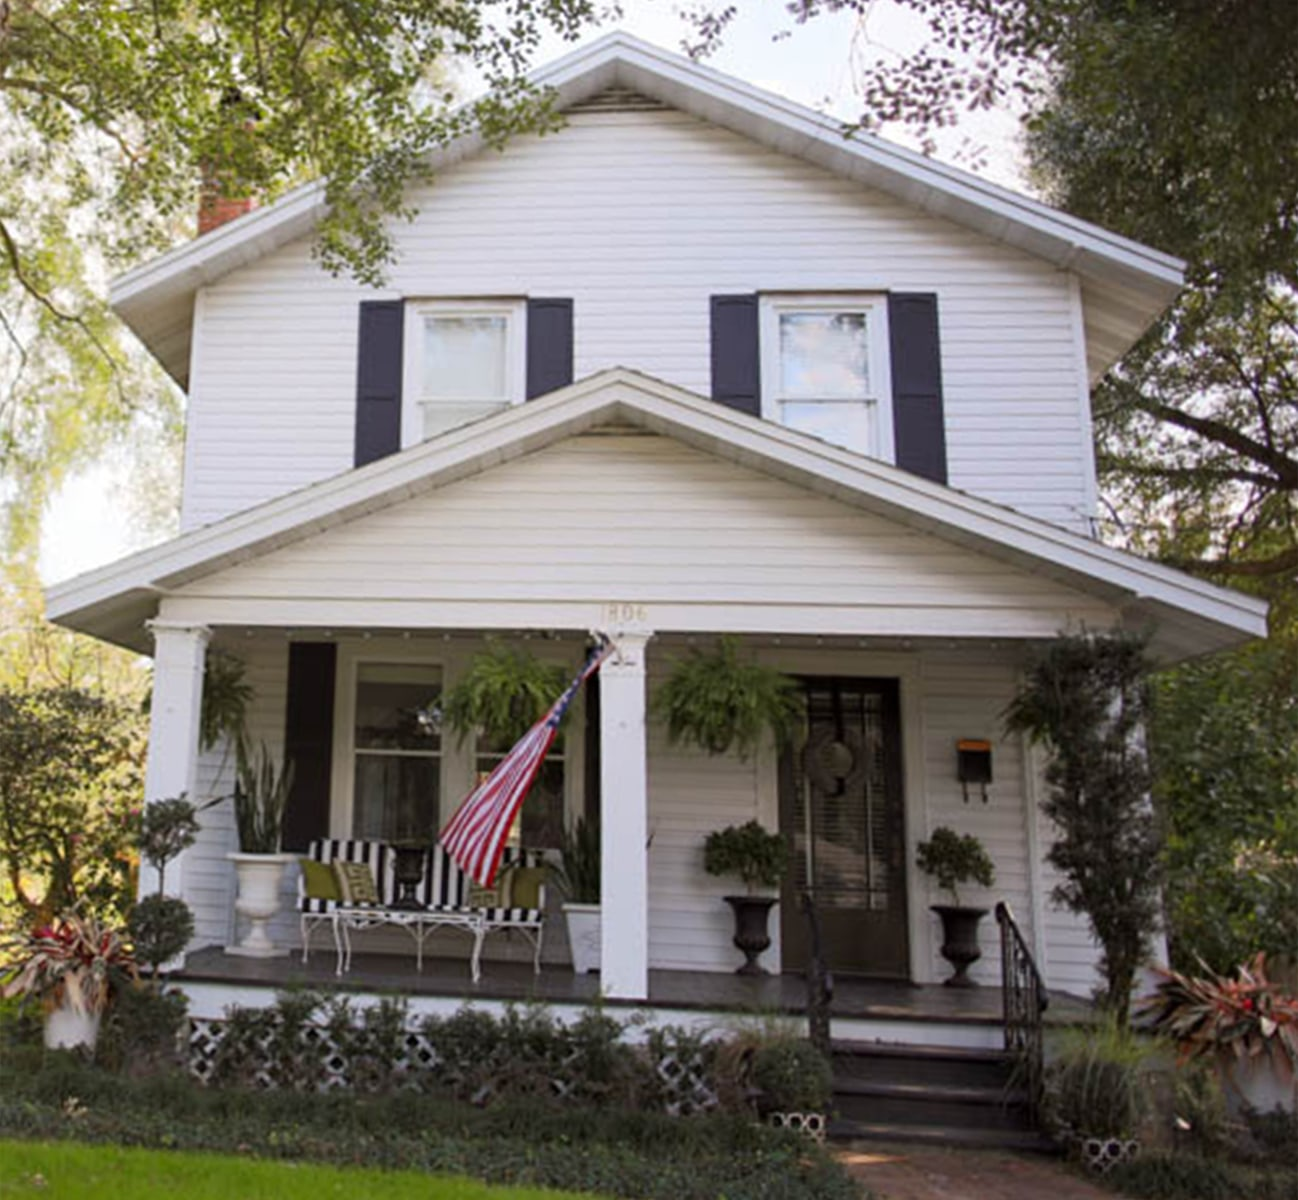 See this 88-year-old home go from deteriorated to downright dreamy